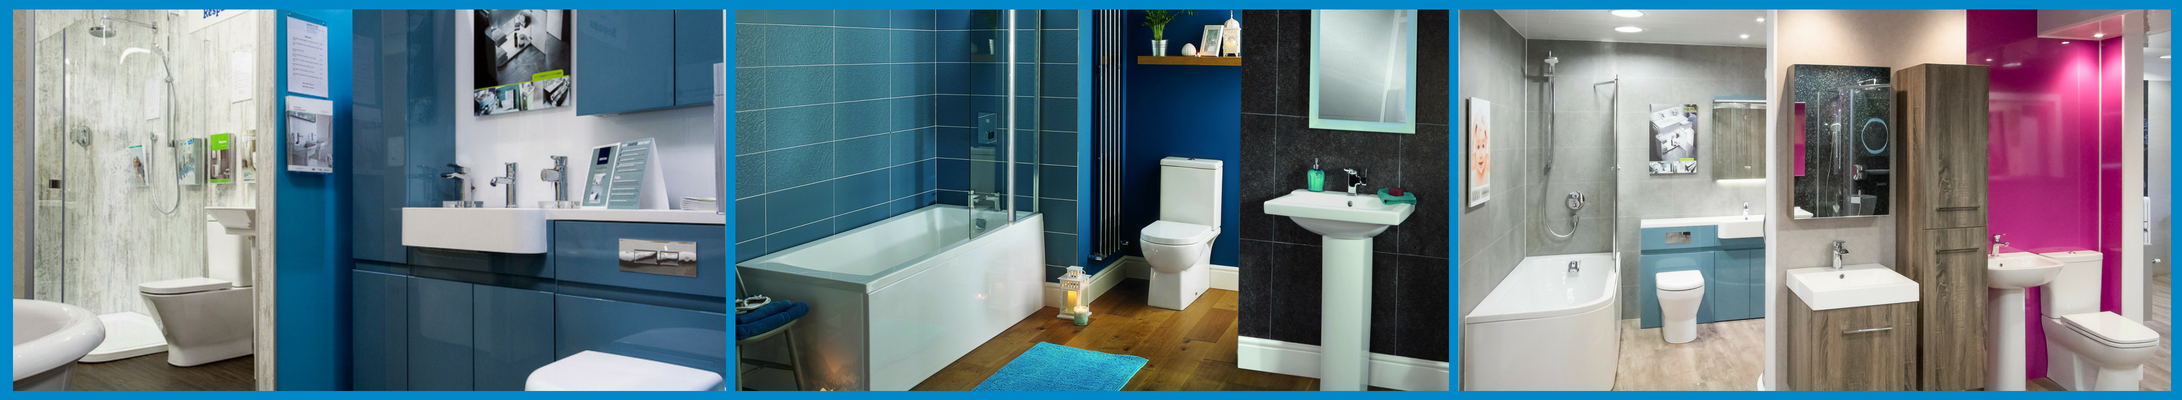 Bellshill Bathroom Showroom